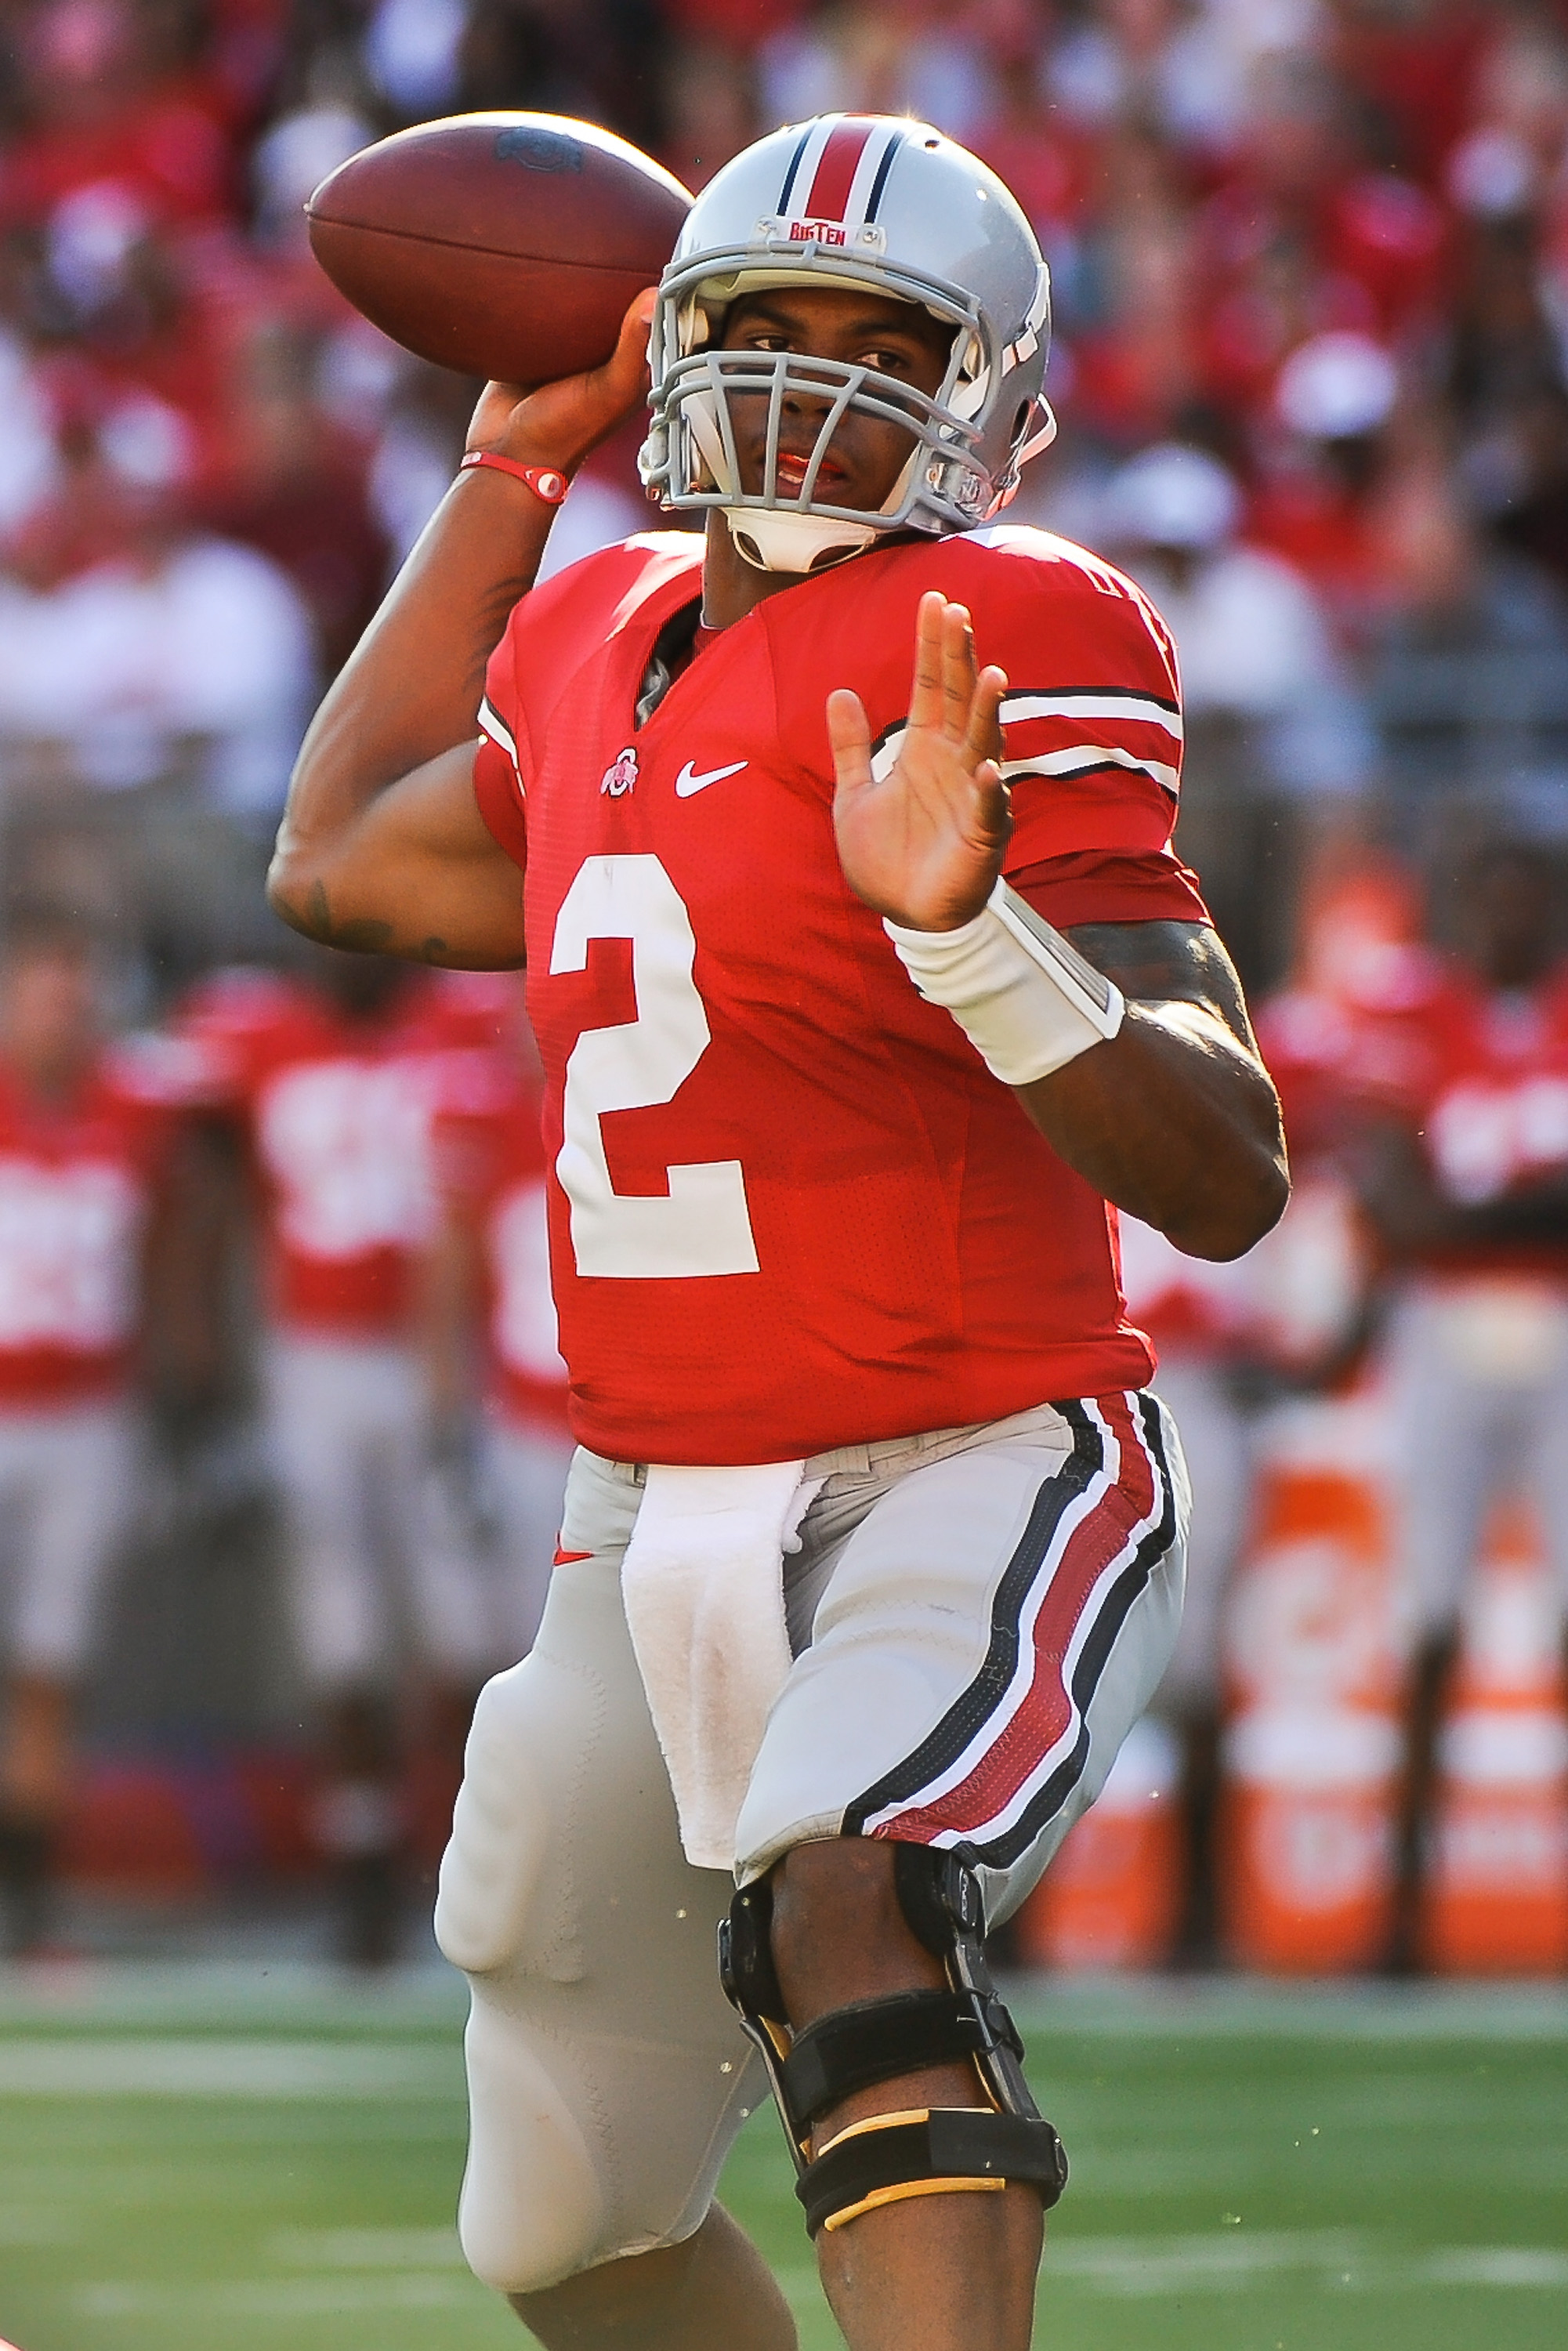 COLUMBUS, OH - SEPTEMBER 25:  Terrelle Pryor #2 of the Ohio State Buckeyes passes against the Eastern Michigan Eagles at Ohio Stadium on September 25, 2010 in Columbus, Ohio.  Ohio State won 73-20. (Photo by Jamie Sabau/Getty Images)